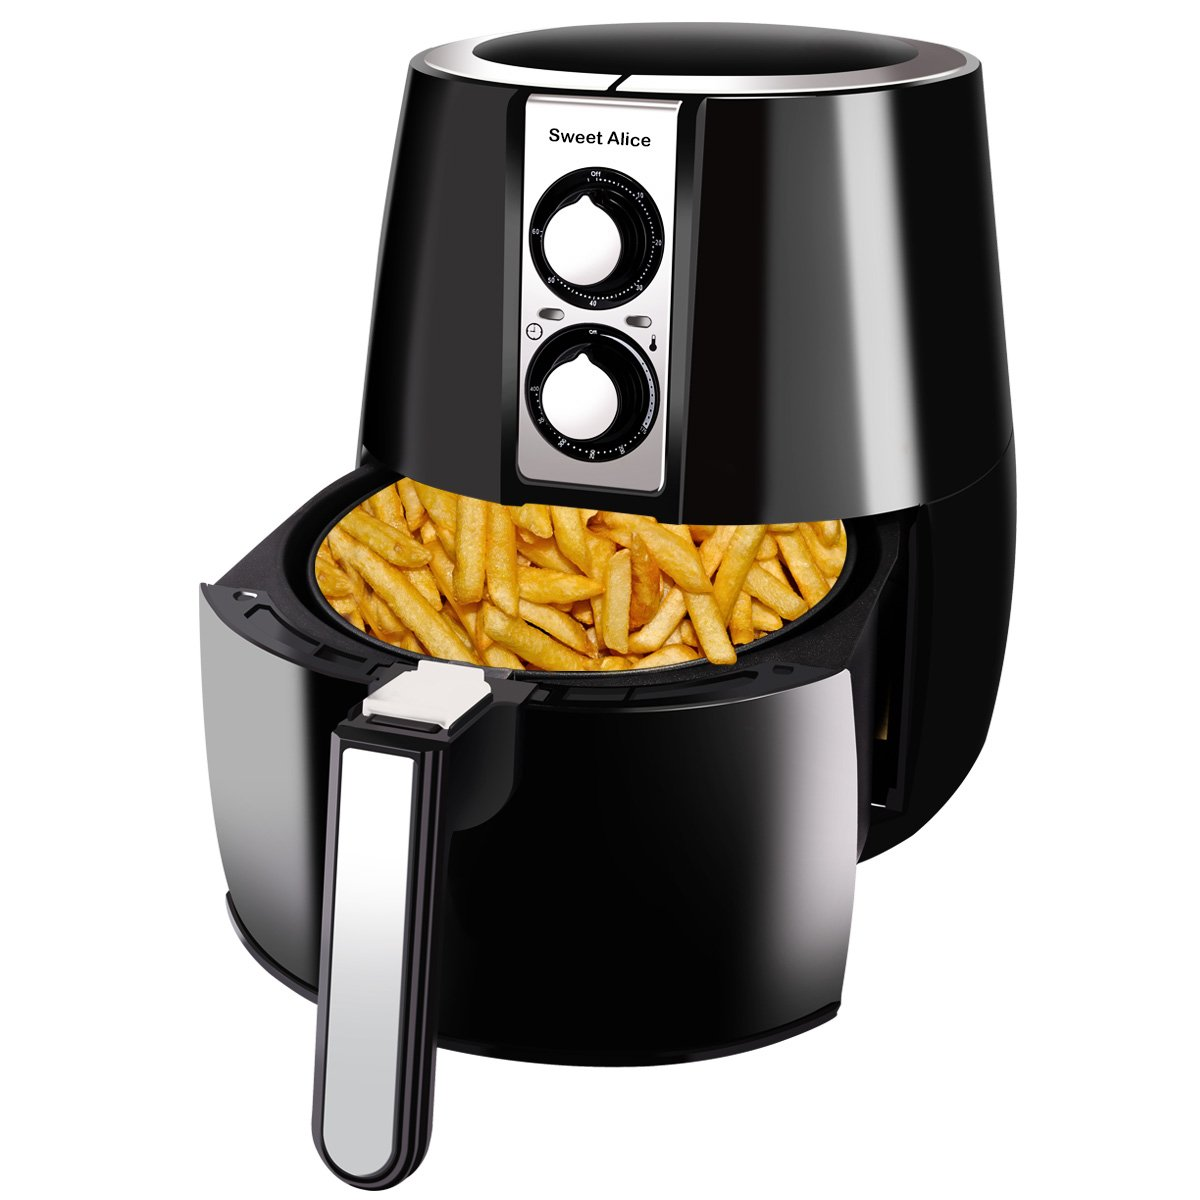 Air Fryer | Sweet Alice Electric Air Fryer 3.4 Quart 1500W | Auto Shut Off Timer & Temperature Control for Health Cooking, Fry, Roast, Baking, Grill